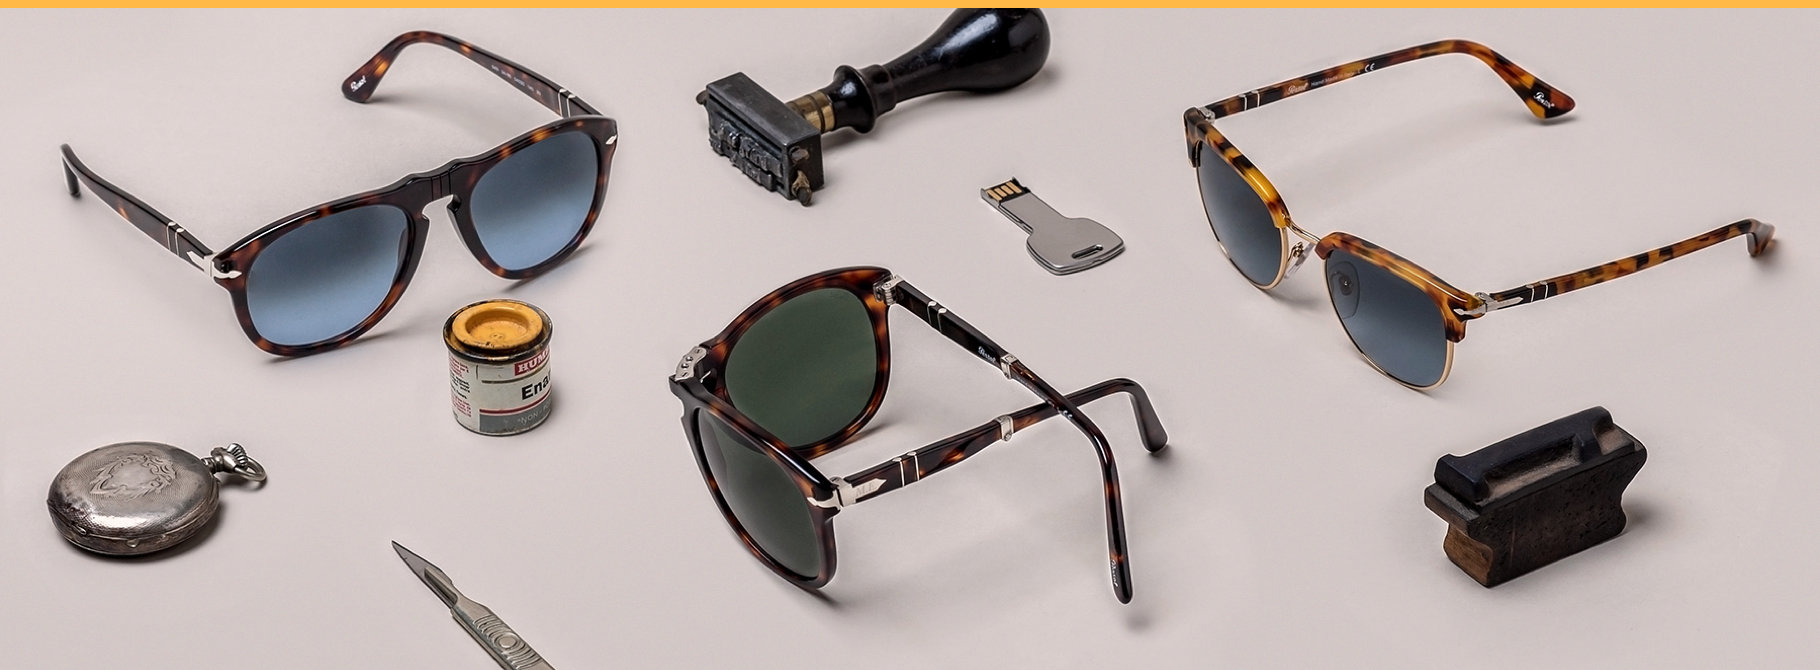 Persol monogram customization | sunglasses